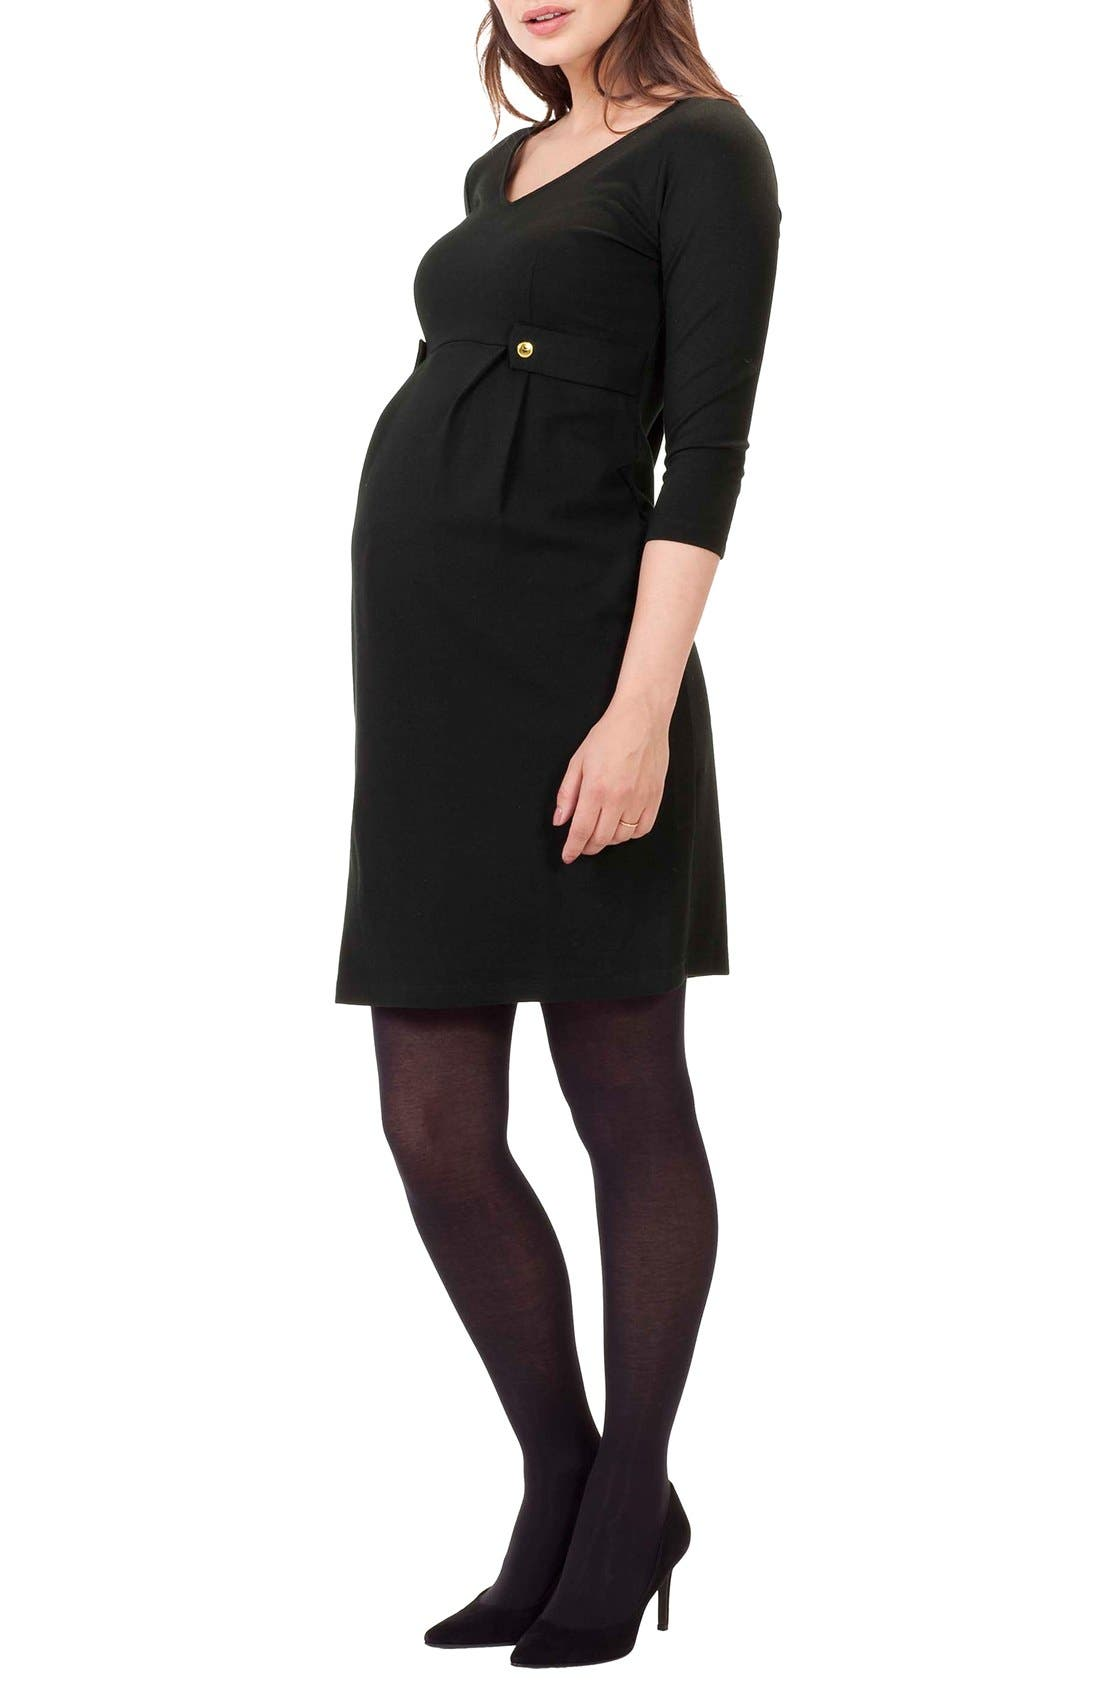 Marlow Maternity Dress,                             Main thumbnail 1, color,                             Caviar Black